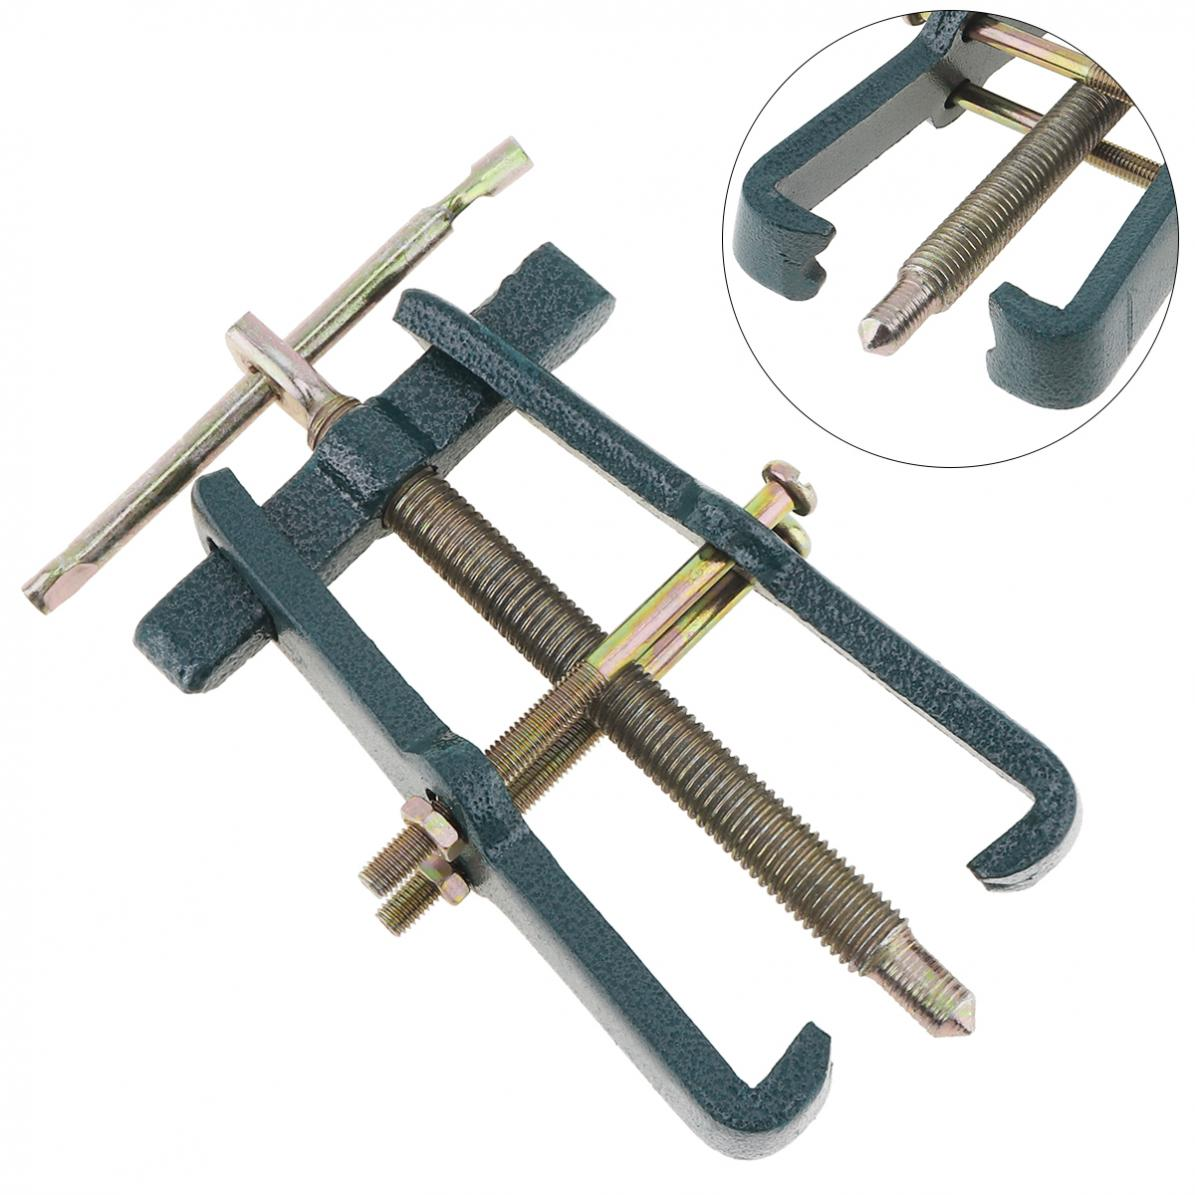 Practical 4 Inch Two-claw Puller Separate Lifting Device Multi-purpose Pull Strengthen Bearing Rama For Auto Mechanic Hand Tools